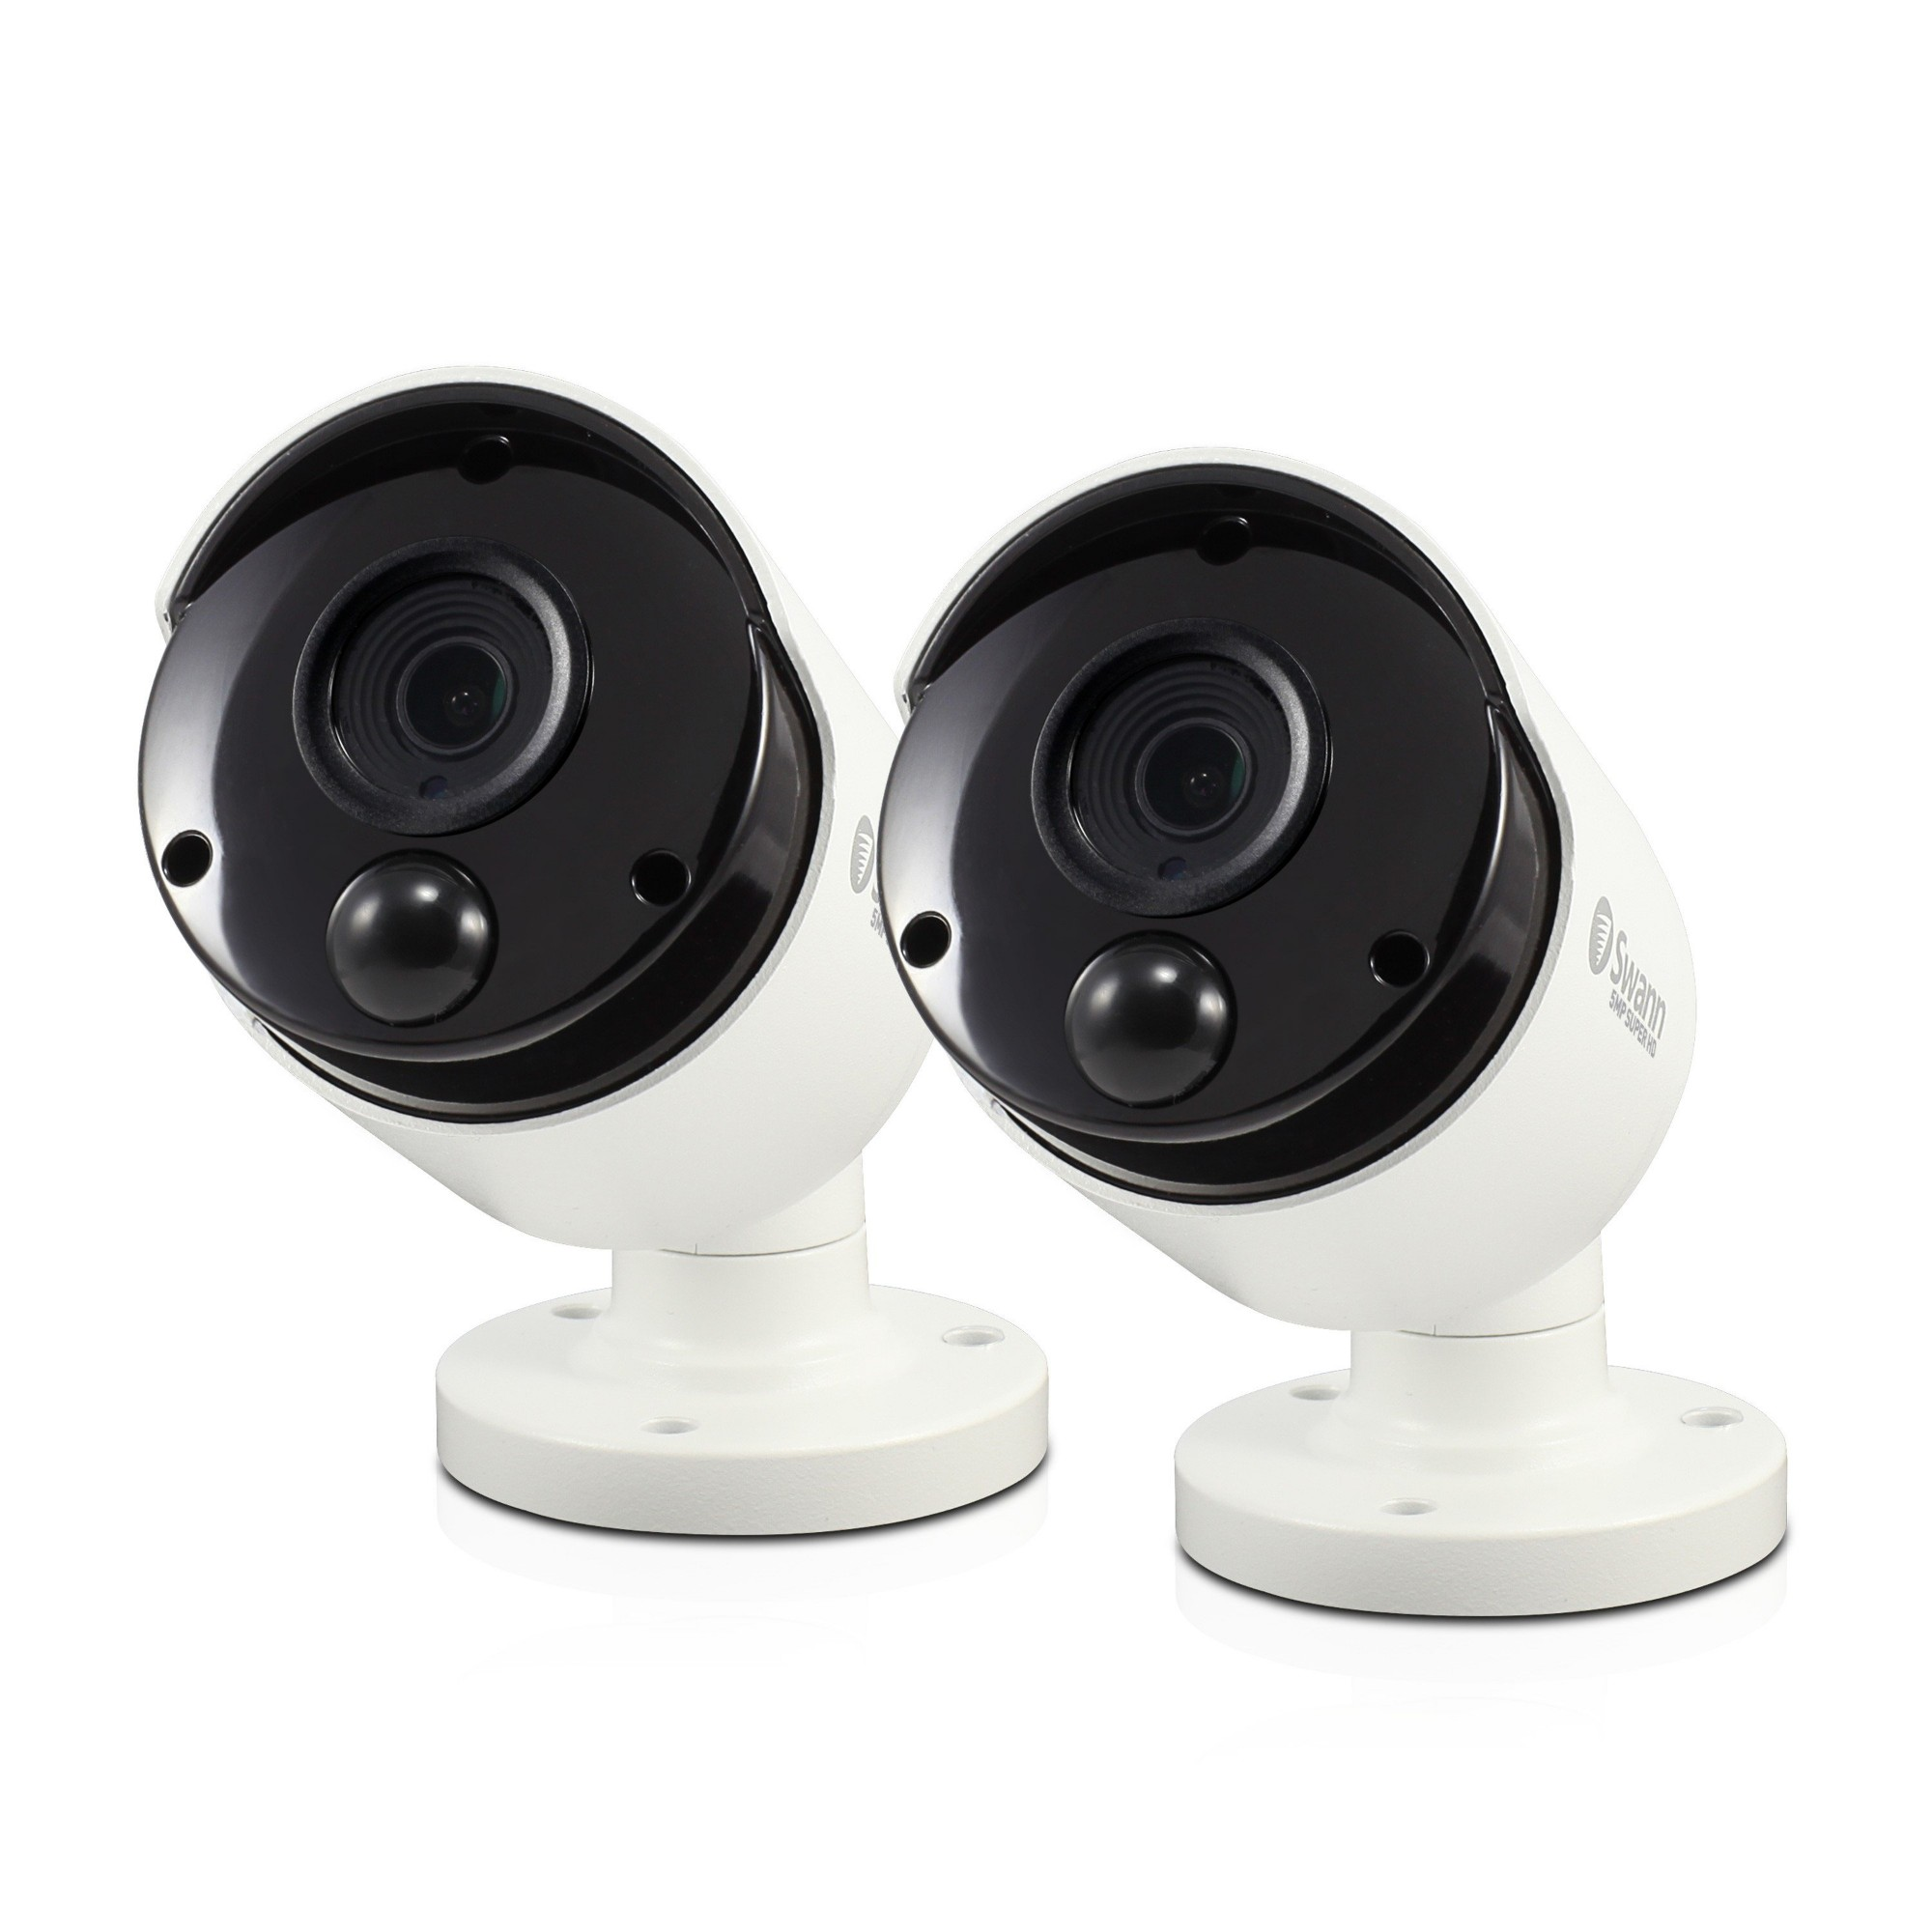 Swann SWPRO-5MPMSBPK2-UK security camera IP security camera Indoor & outdoor Bullet White